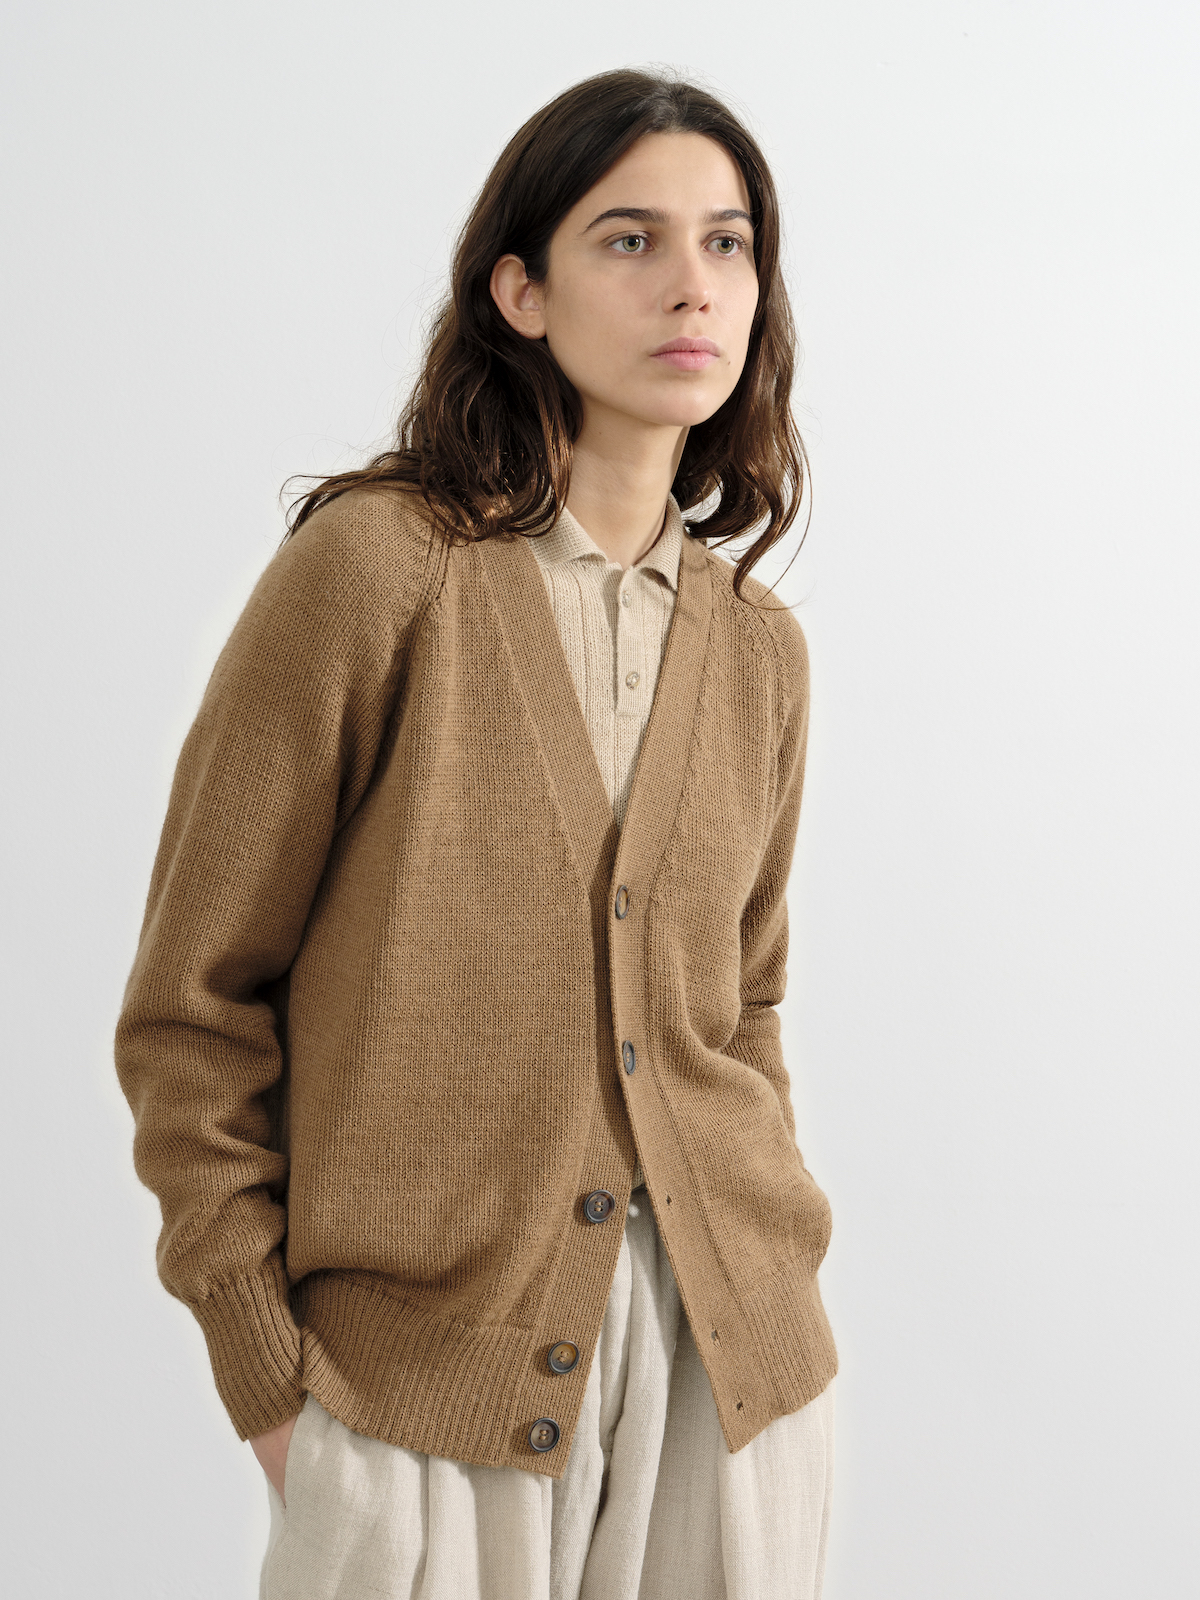 the Cardigan in Natural Camel | by Knitbrary